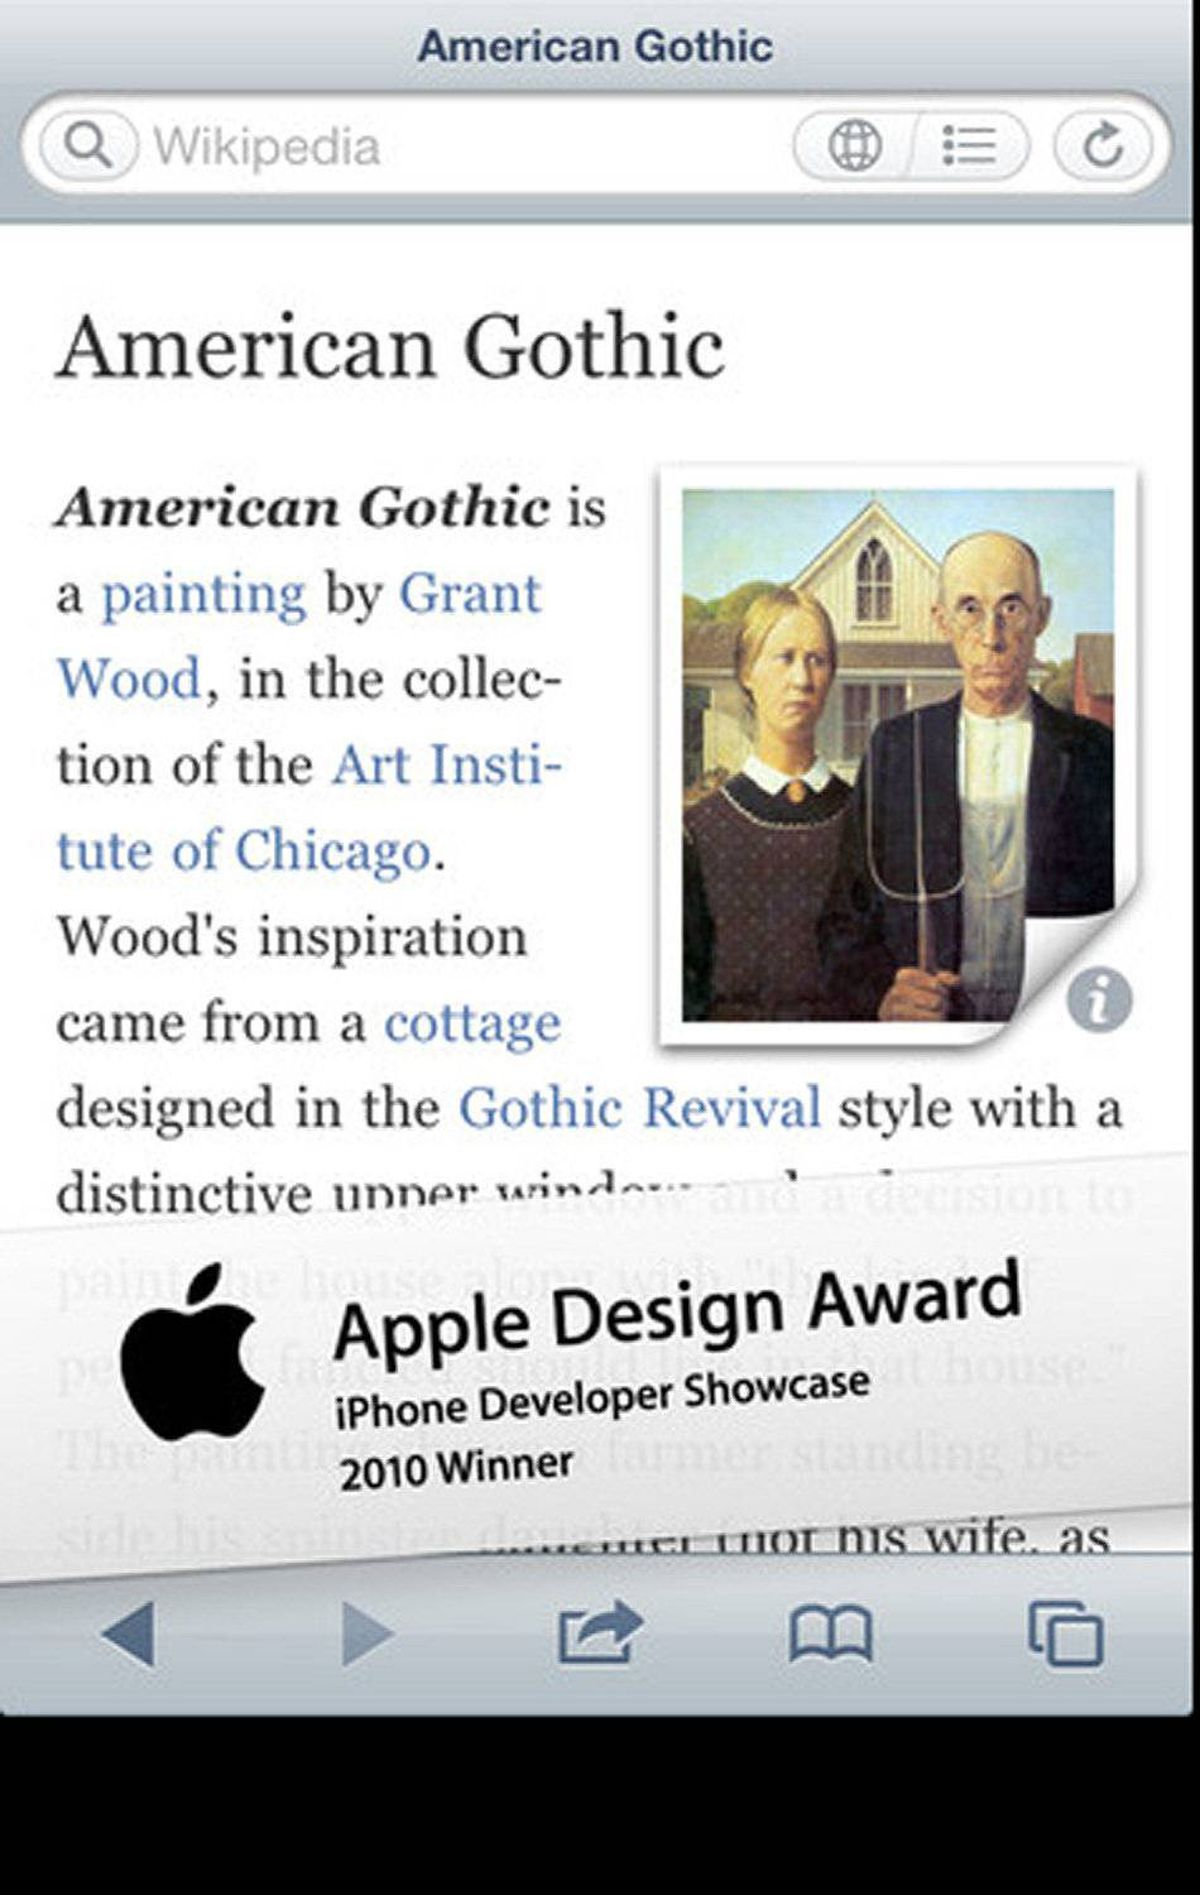 Articles is a beautiful Wikipedia reader for iPhone and iPod touch. Navigate and search Wikipedia entries quickly. Learn about local history and interesting places nearby with the integrated map feature. Tap and hold on an article link to save it for later reading. Bookmark interesting articles in custom folders, so you can have useful information at your fingertips. ($2.99, sophiestication.com)